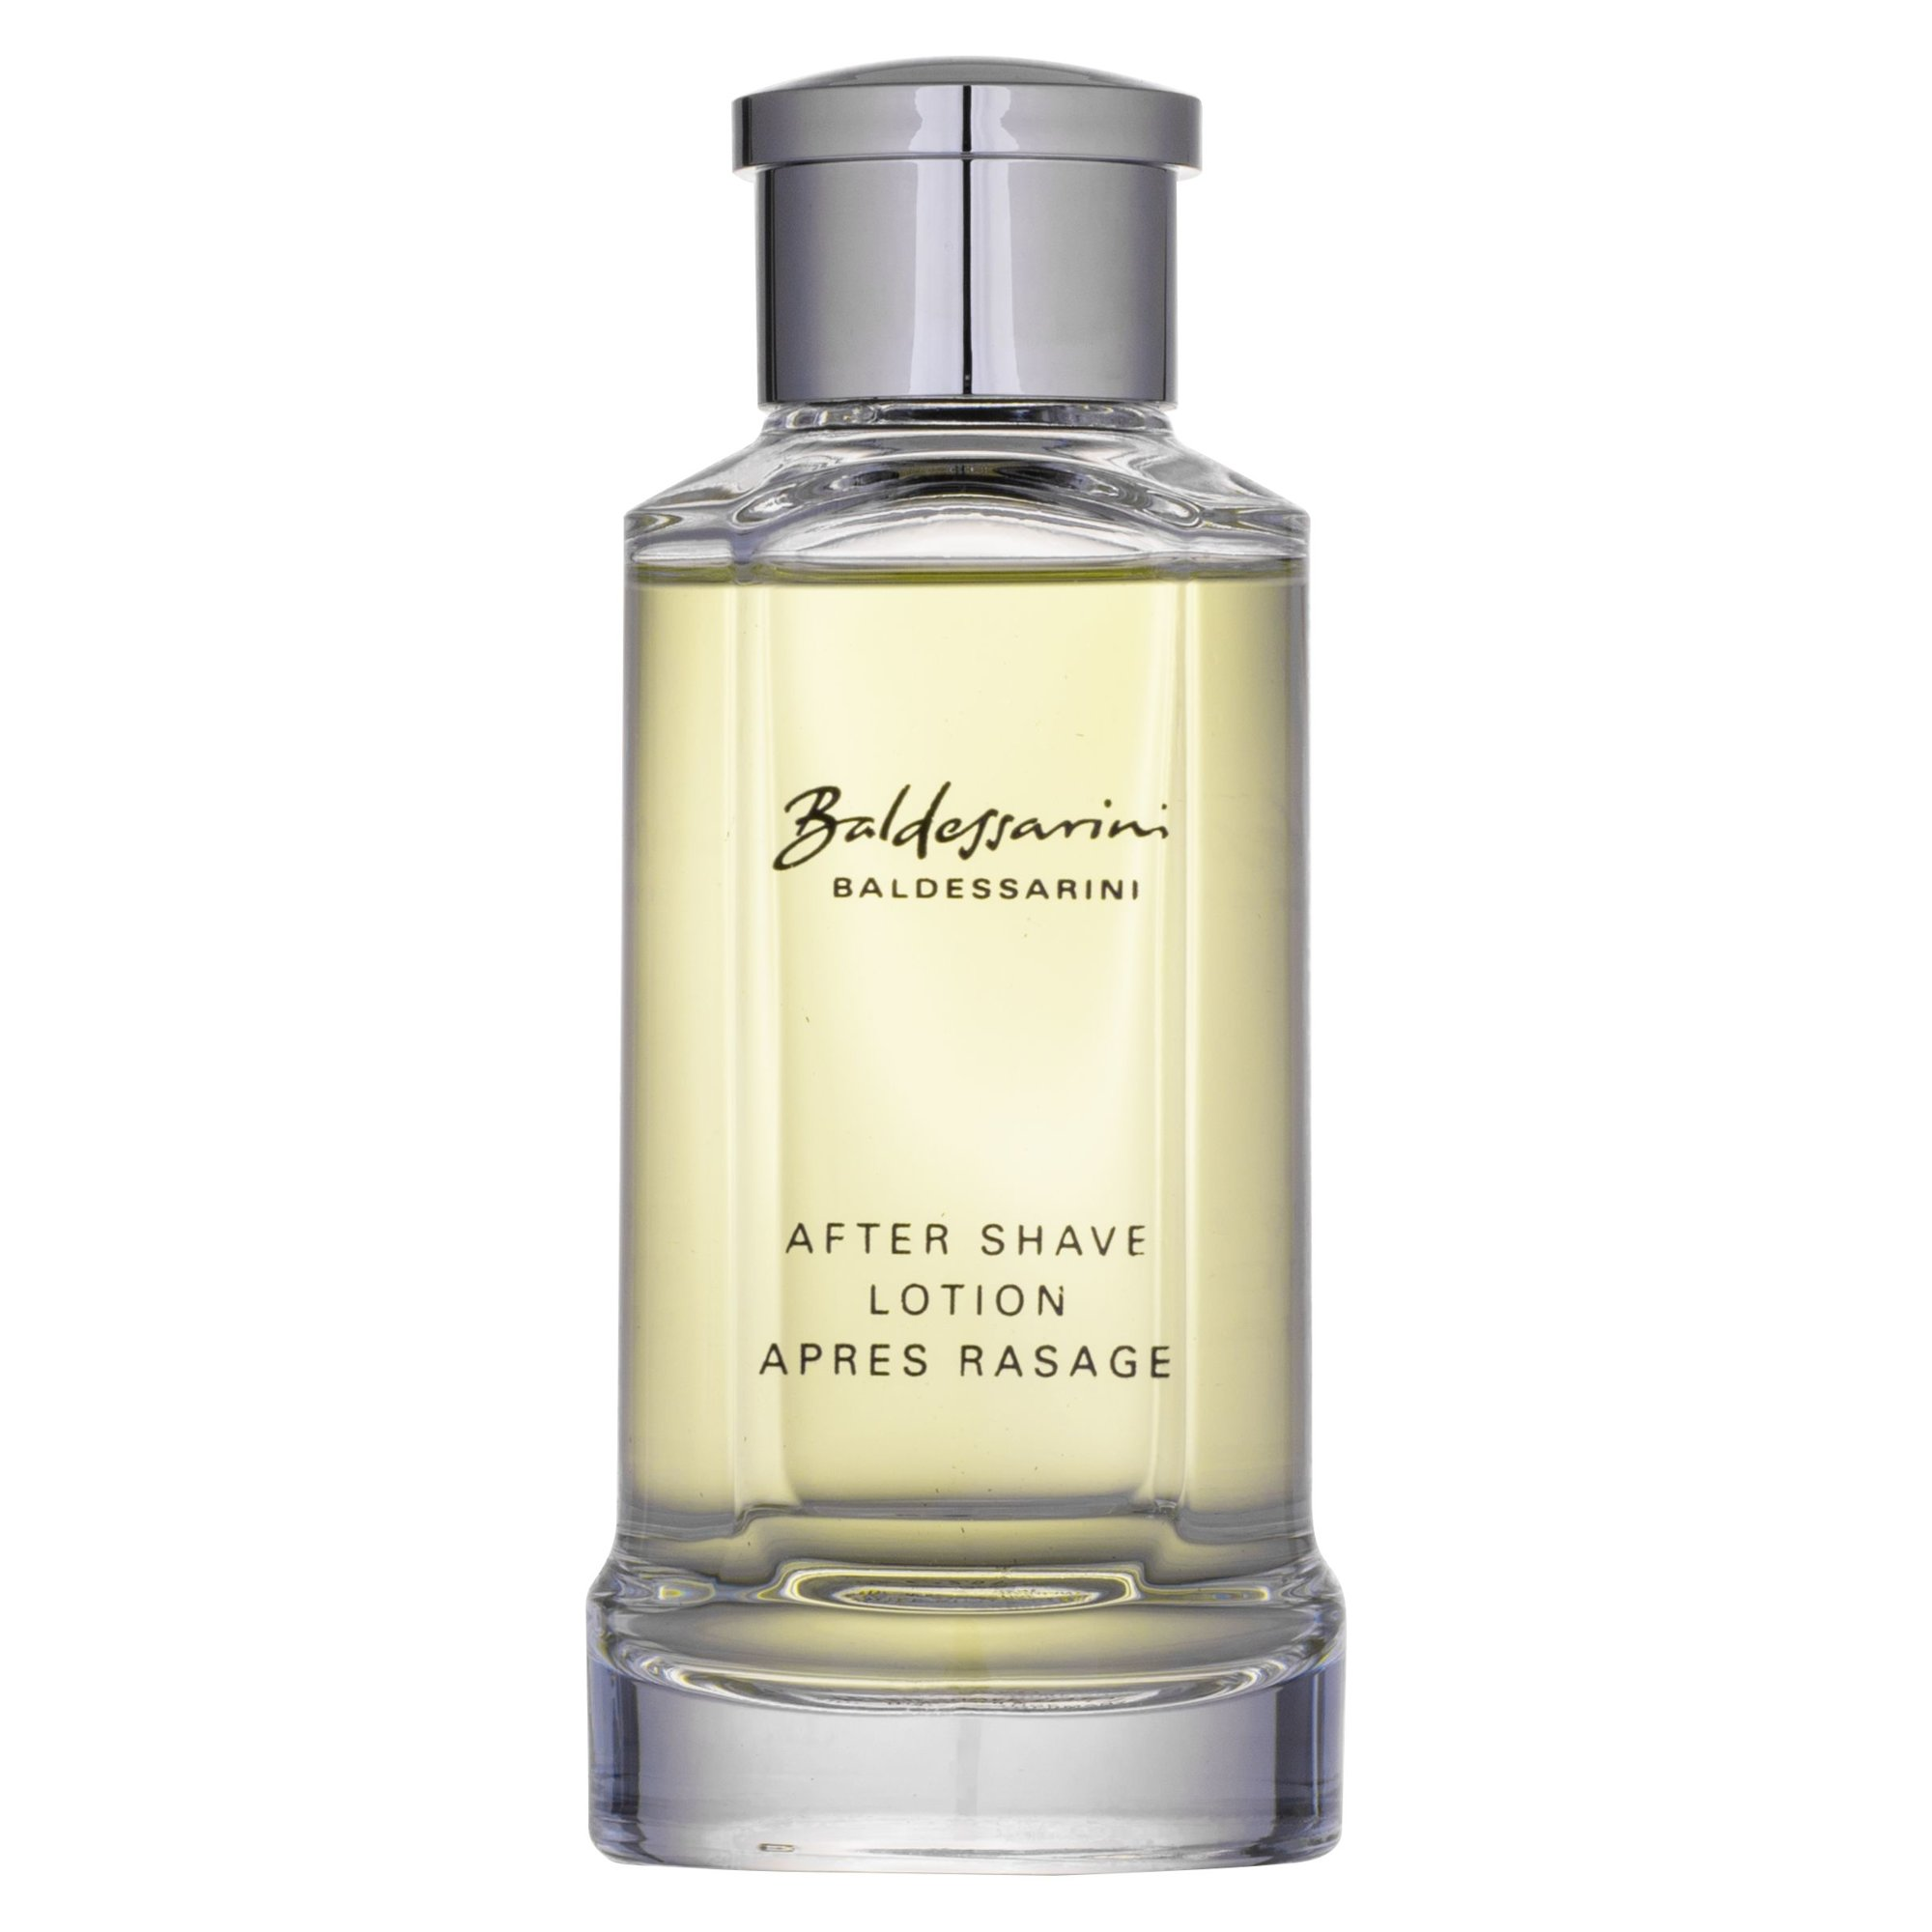 Baldessarini Baldessarini Aftershave 75ml